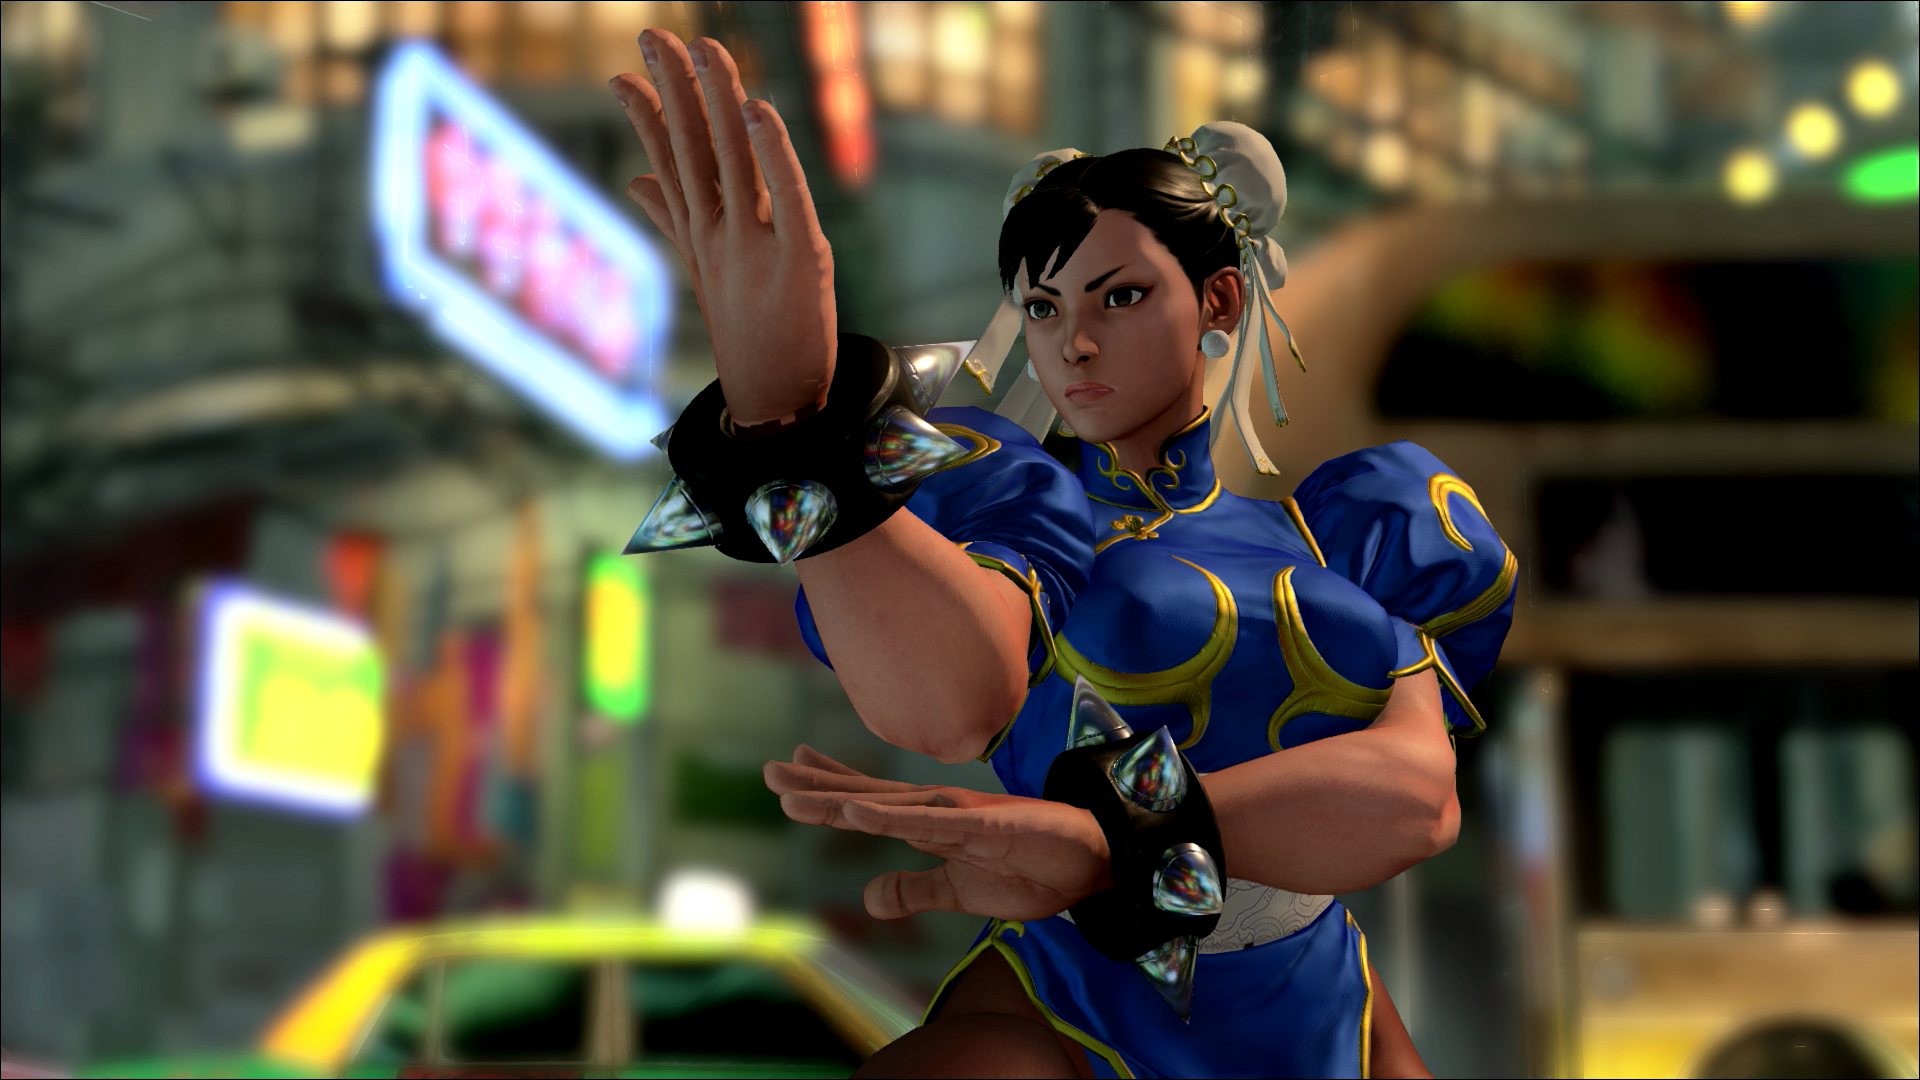 street fighter online game - HD 1917×1077